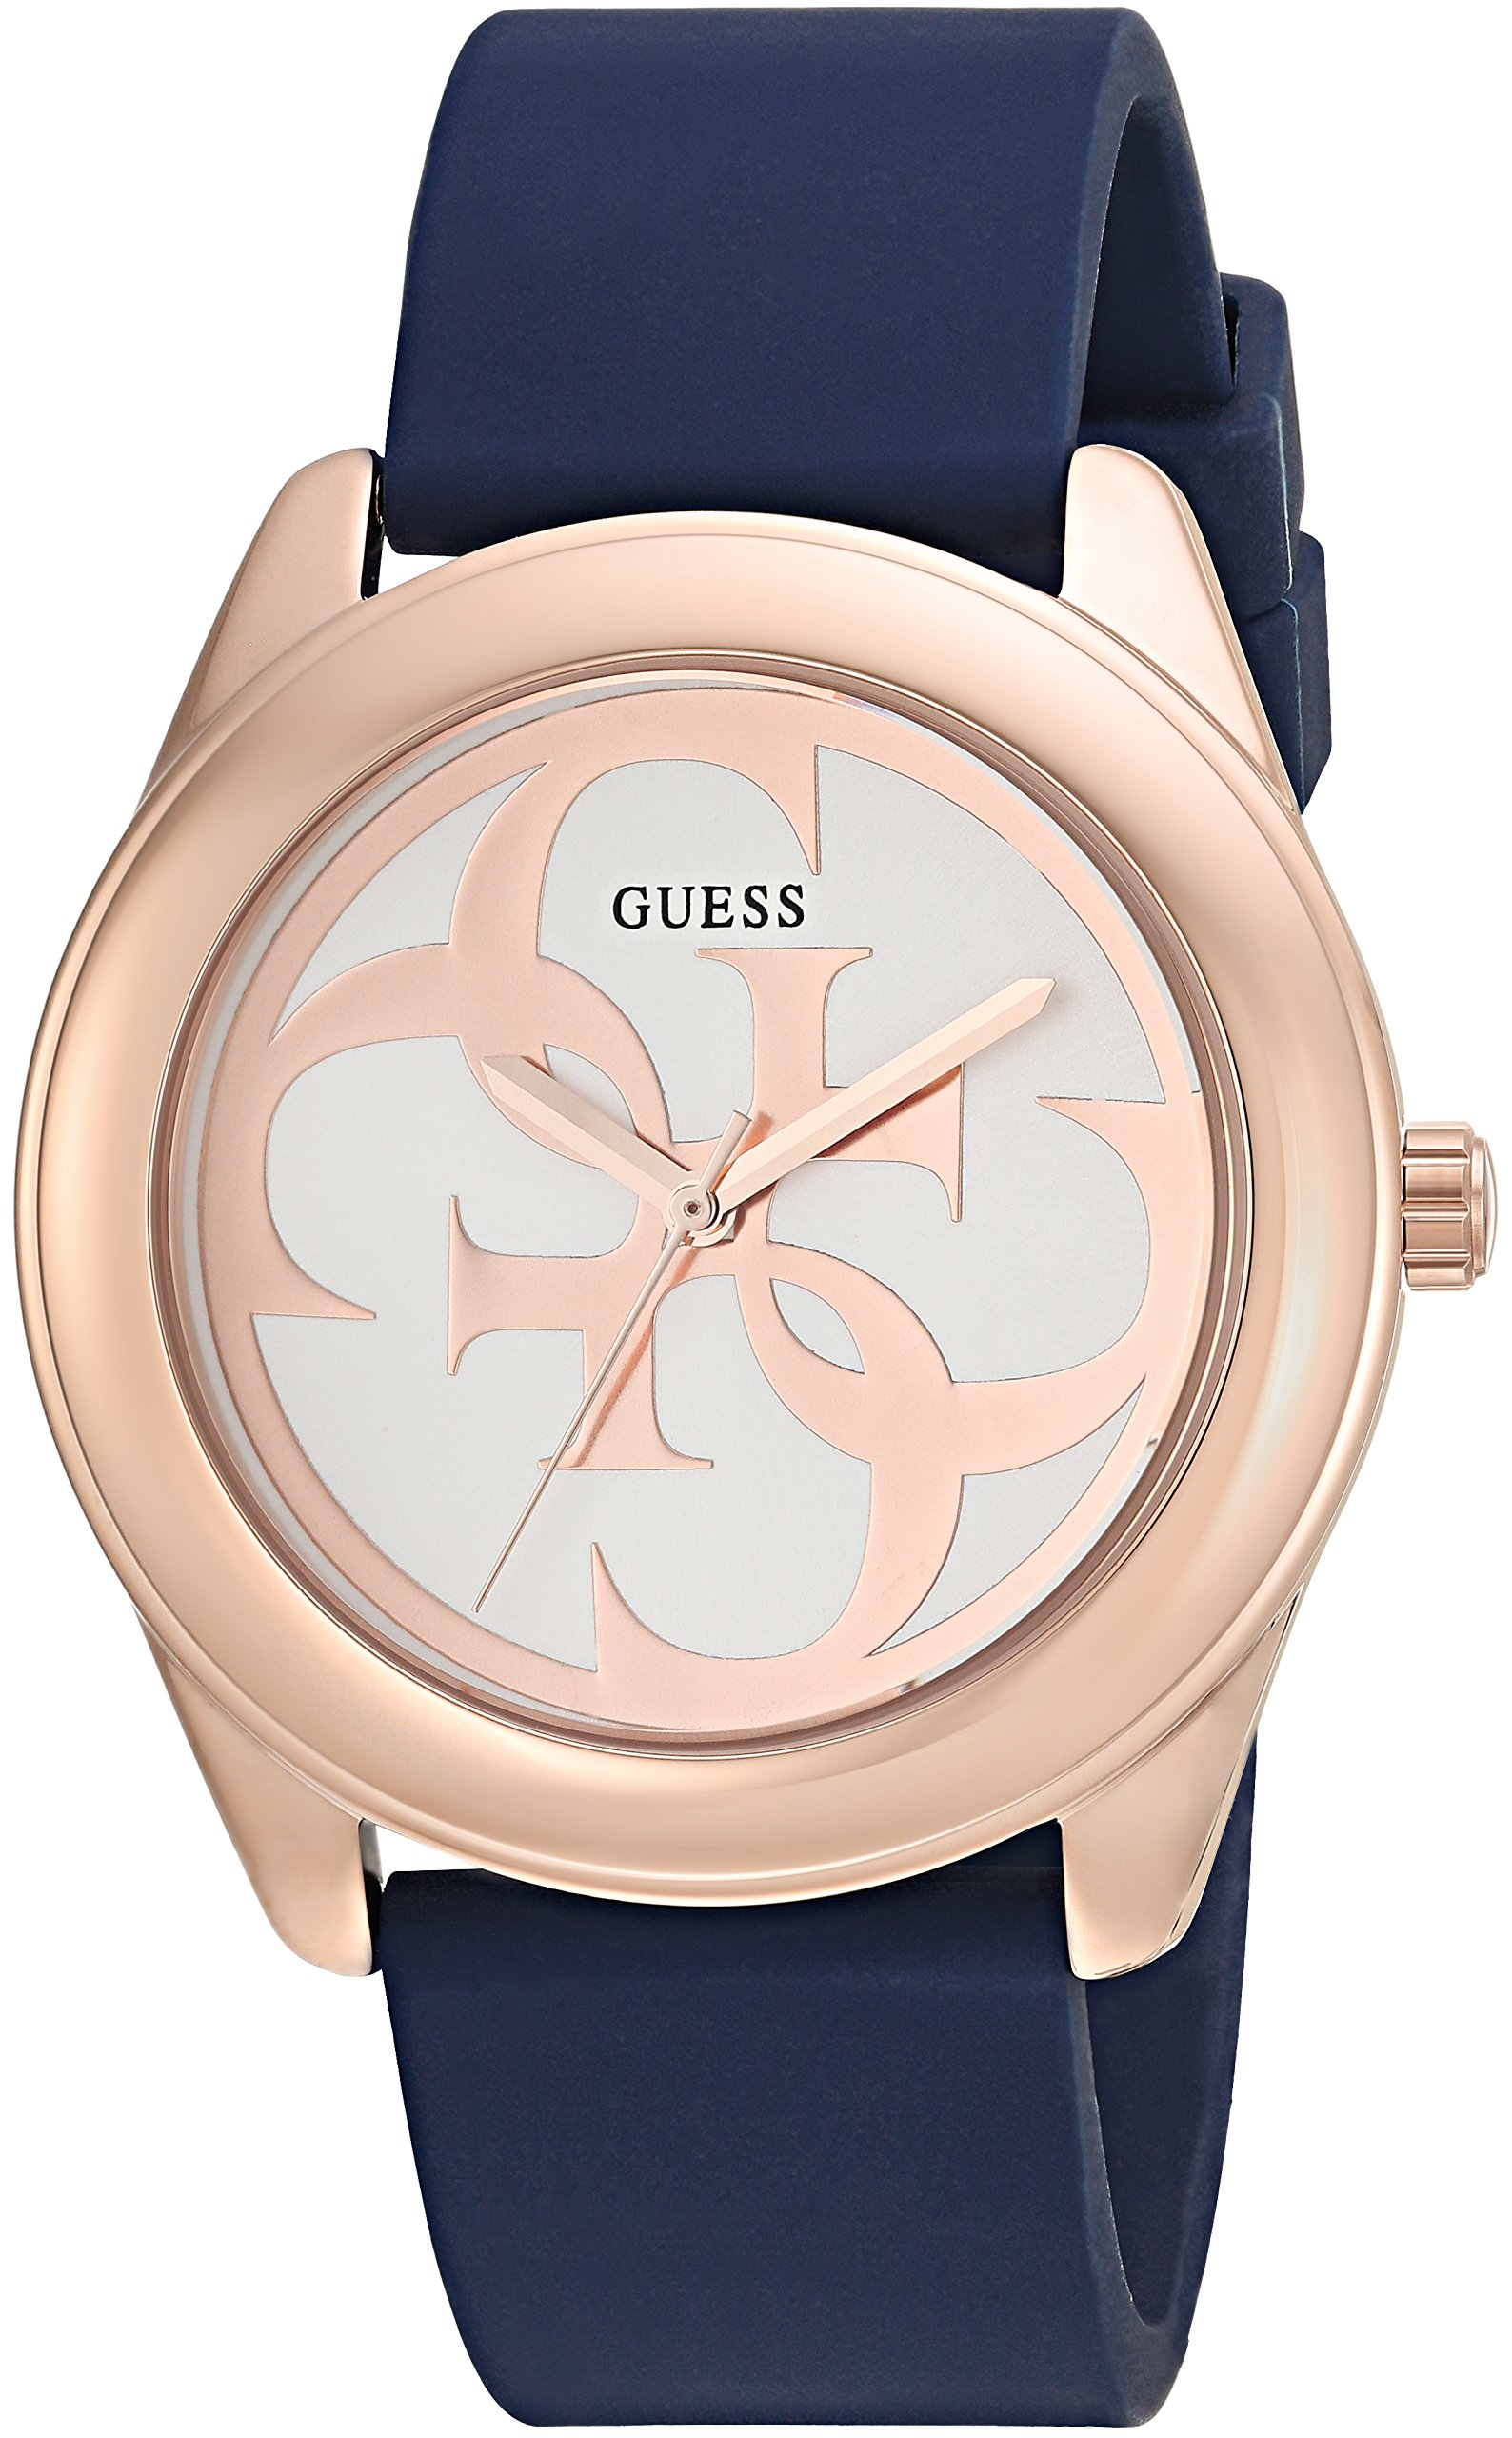 4a3ff3255 Galleon - GUESS Comfortable Rose Gold-Tone + Blue Stain Resistant Silicone  Logo Watch. Color: Blue (Model: U0911L6)